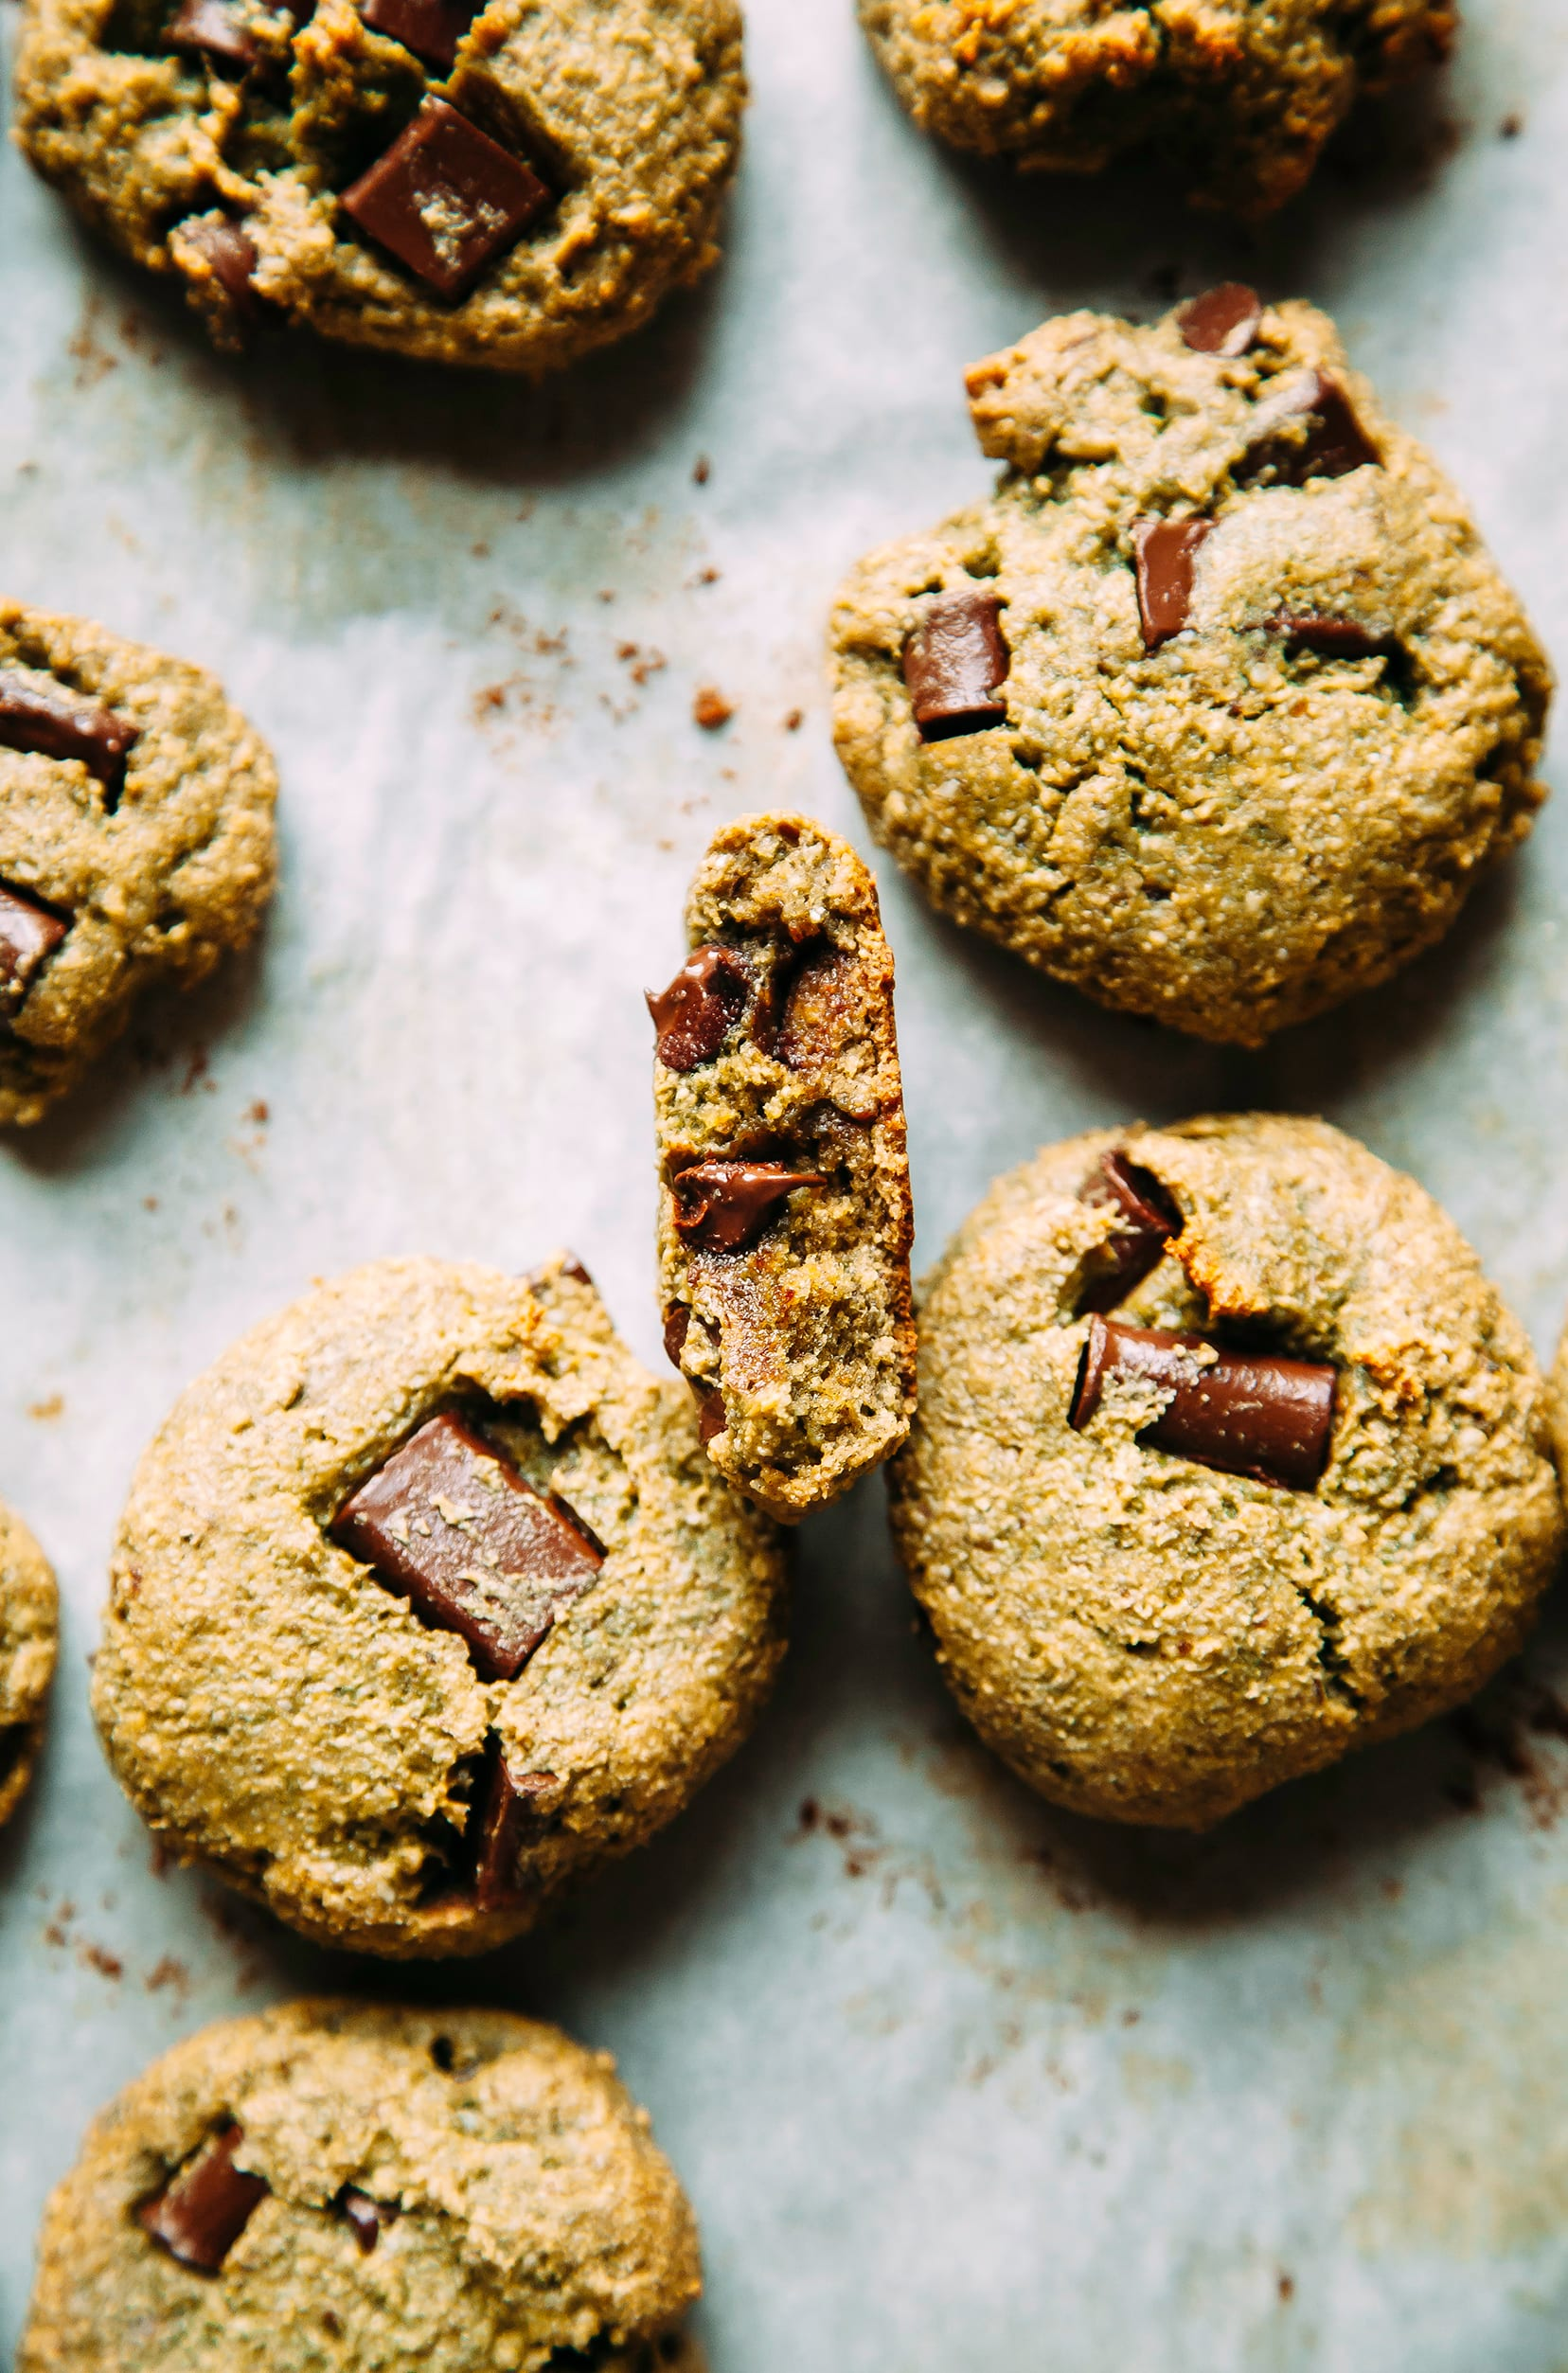 An overhead shot of chocolate chip wonder cookies on a white parchment paper background.